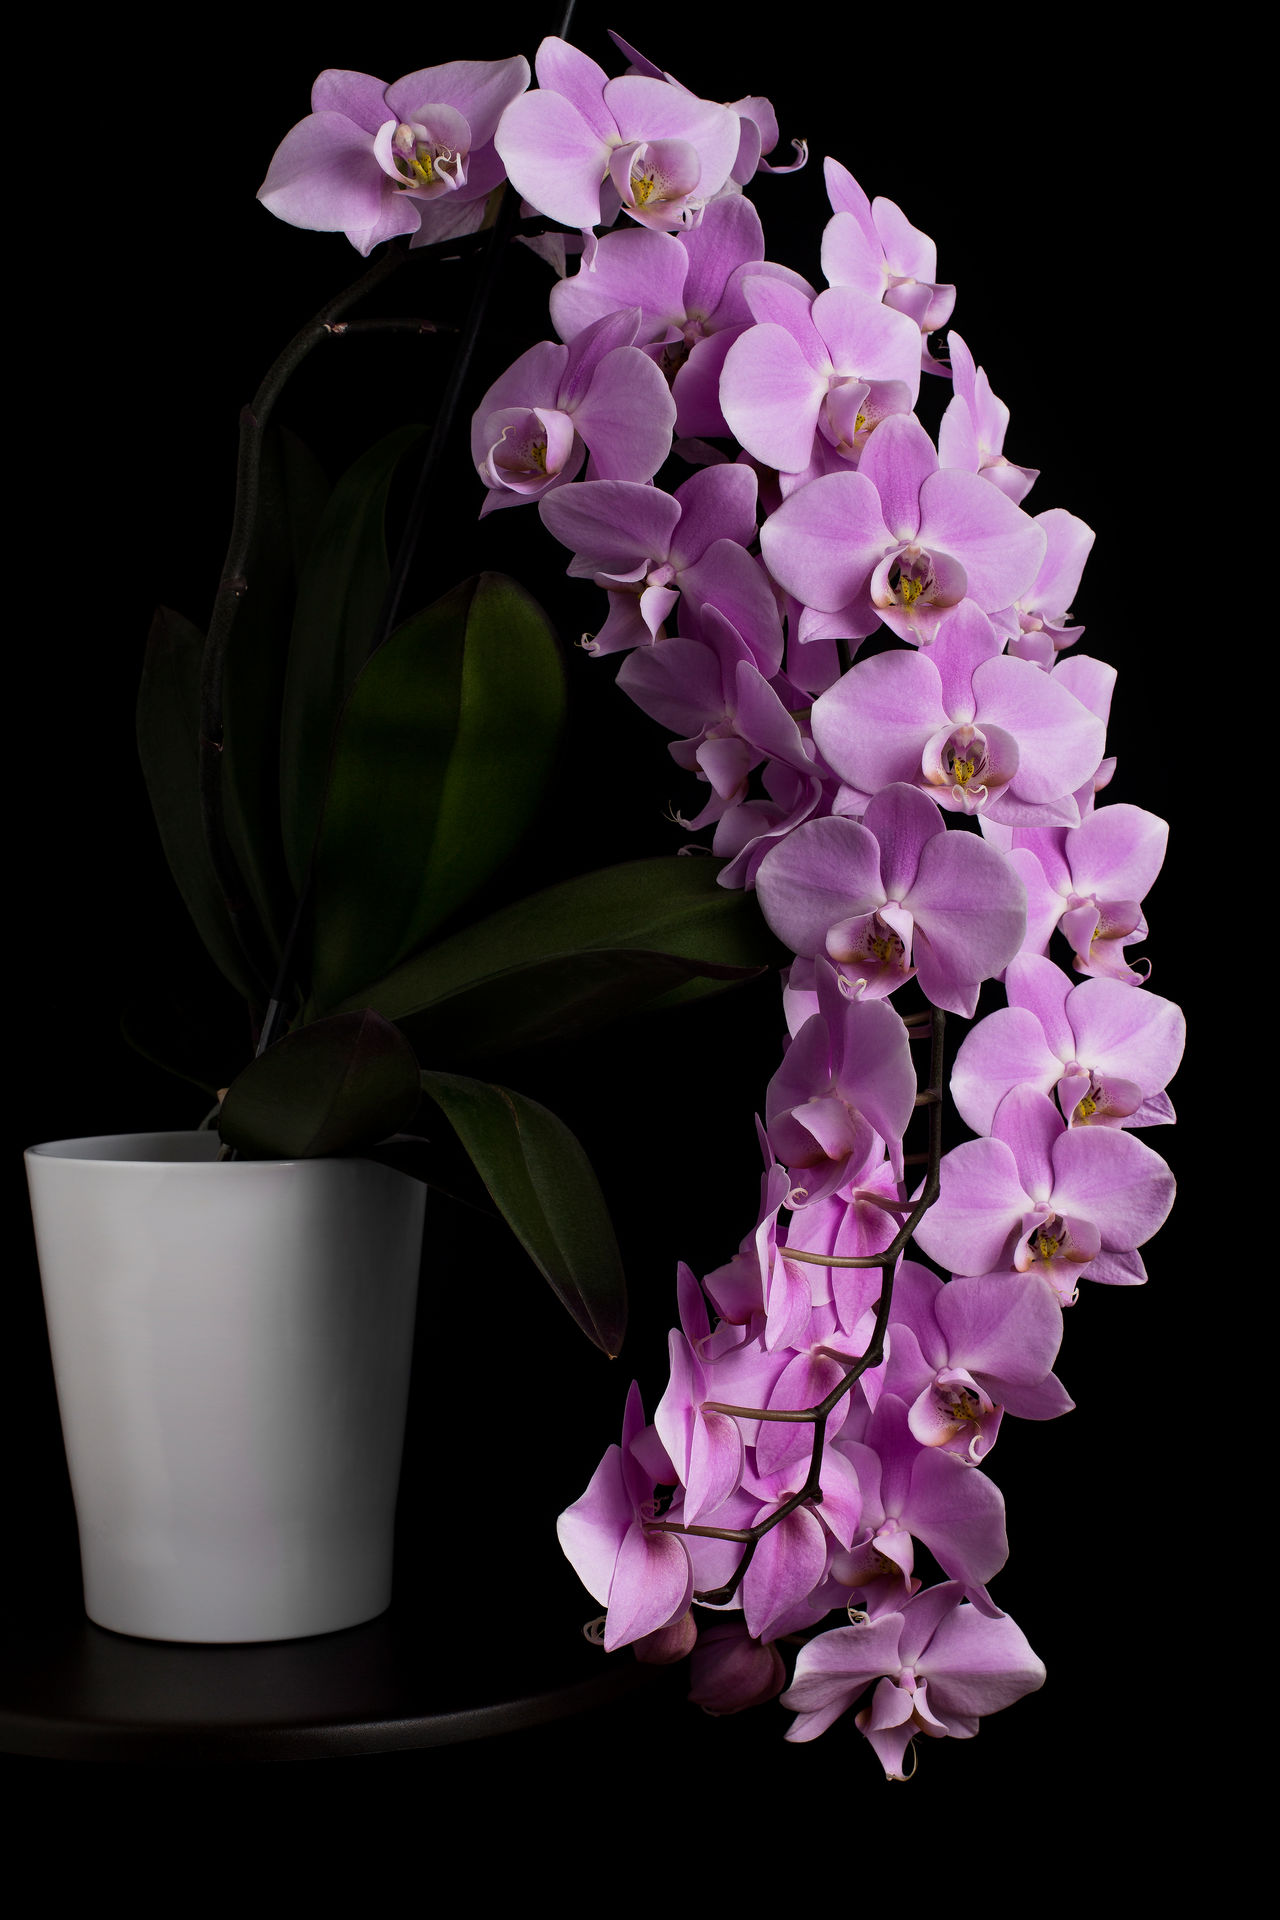 Beauty In Nature Beauty In Nature Black Background Close-up Flower Flower Arrangement Flower Head Fragility Freshness Gift Growth Harmony Harmony With Nature Nature Orchid Orchid Flower Orchidee Pink Flower Pink Orchid Plant Relaxation Relaxation Time Rose Flower Rose Orchid Rosy